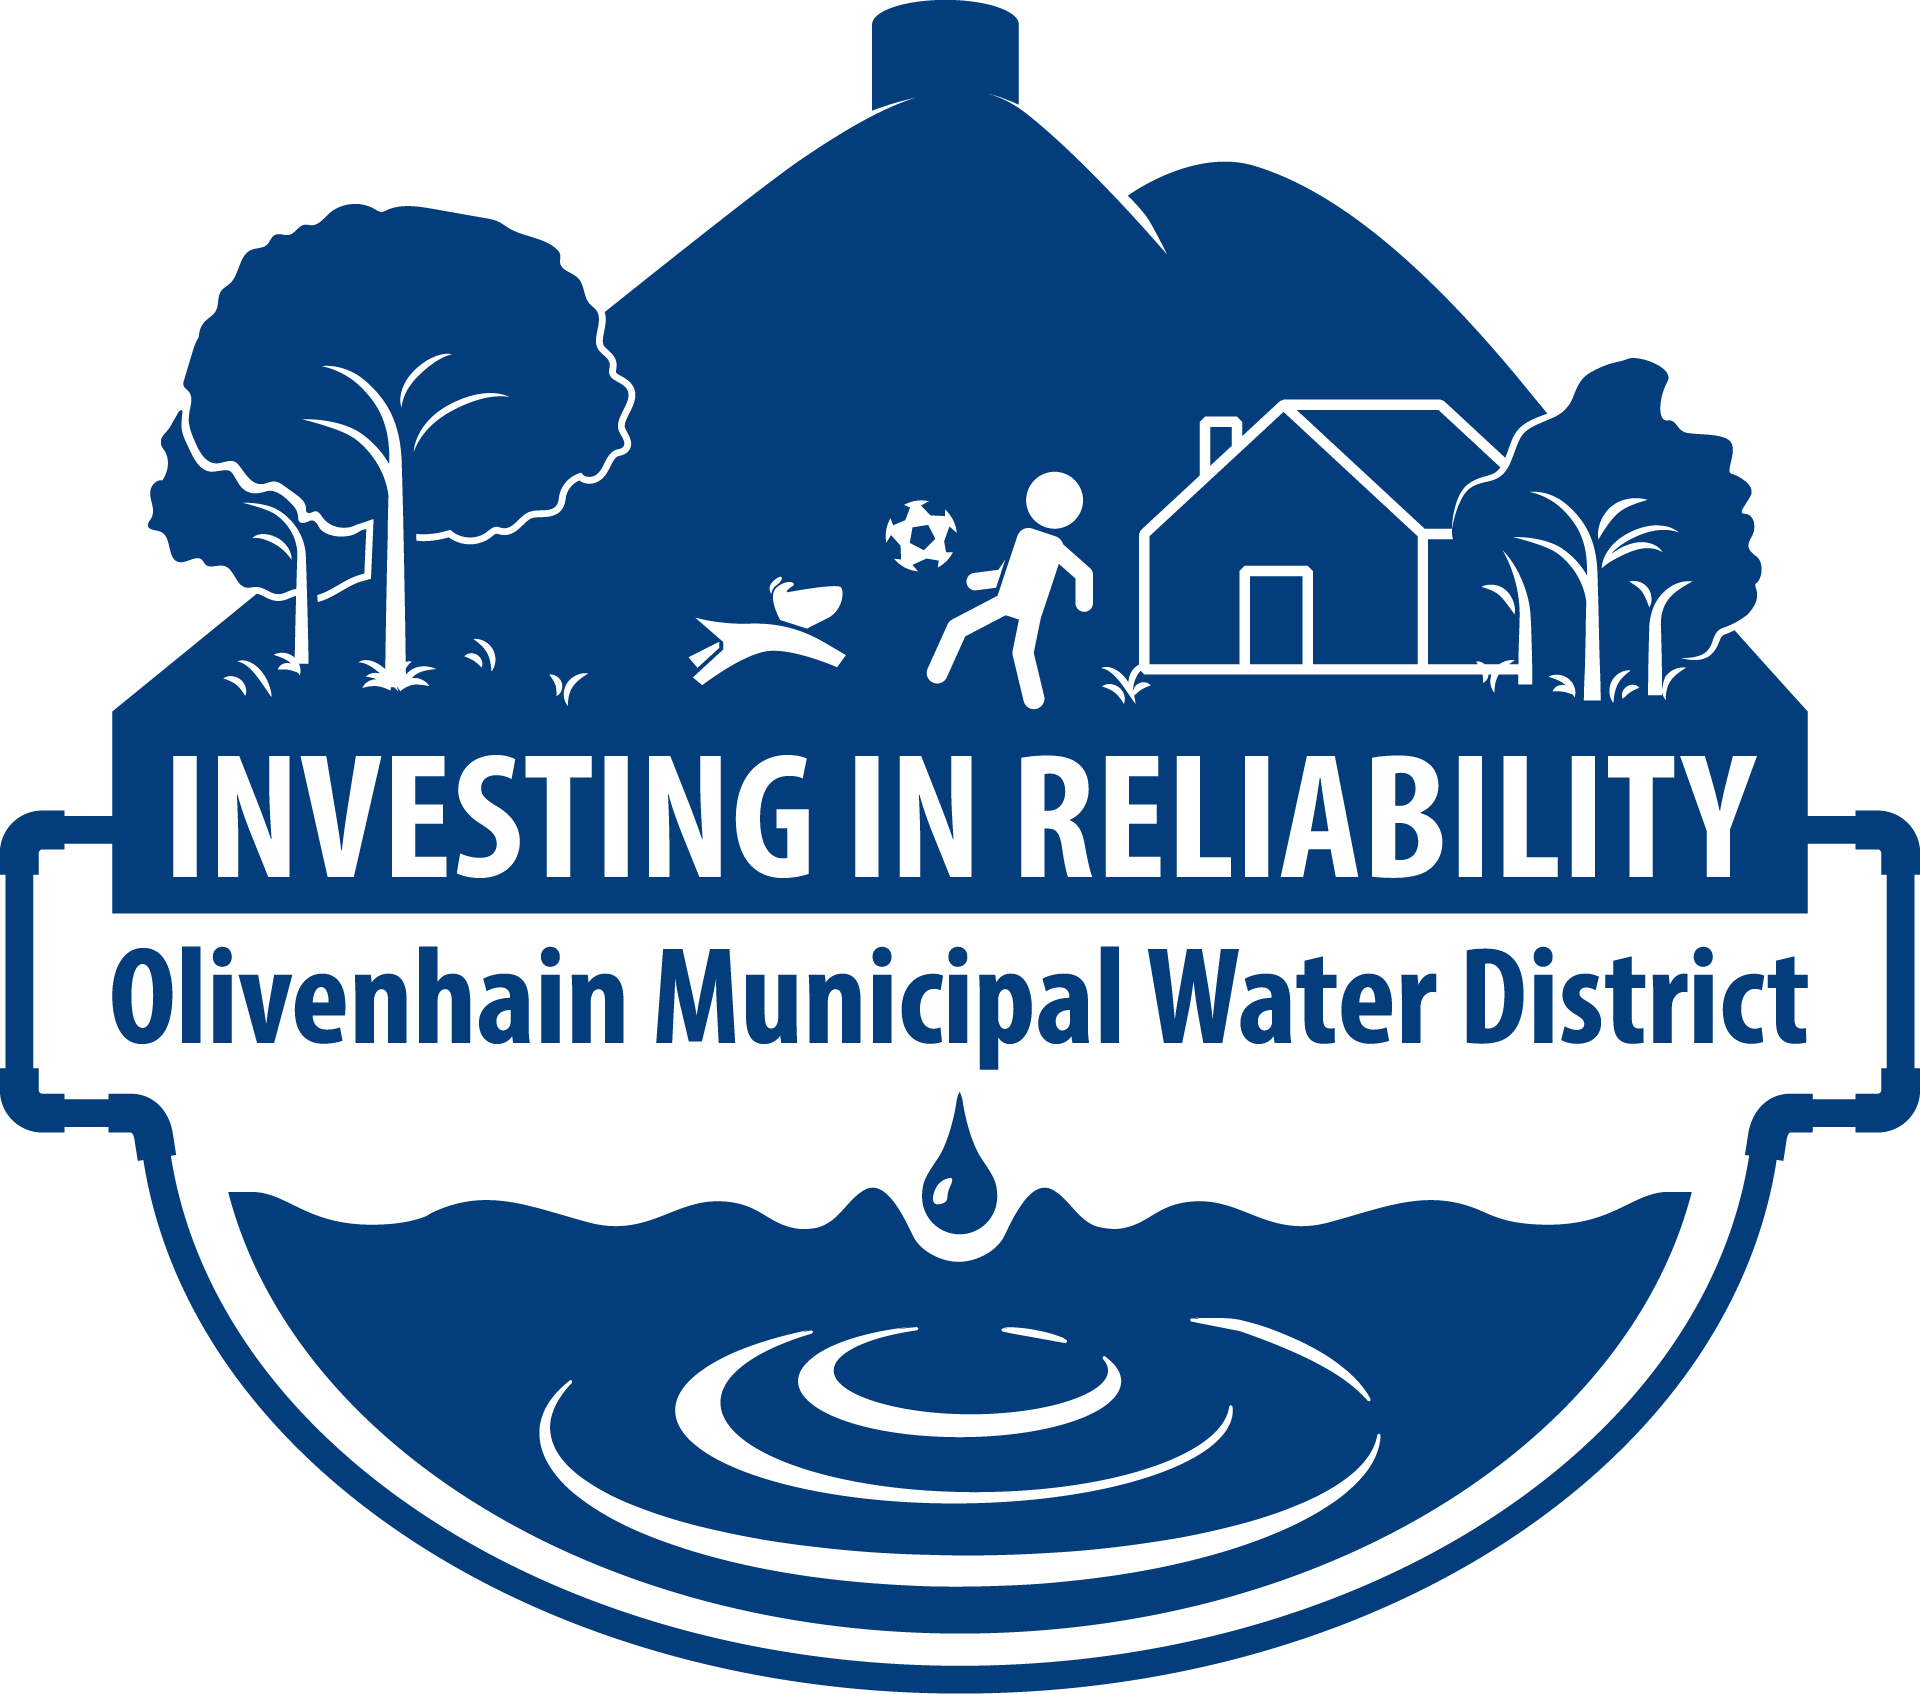 investing in reliability cip logo